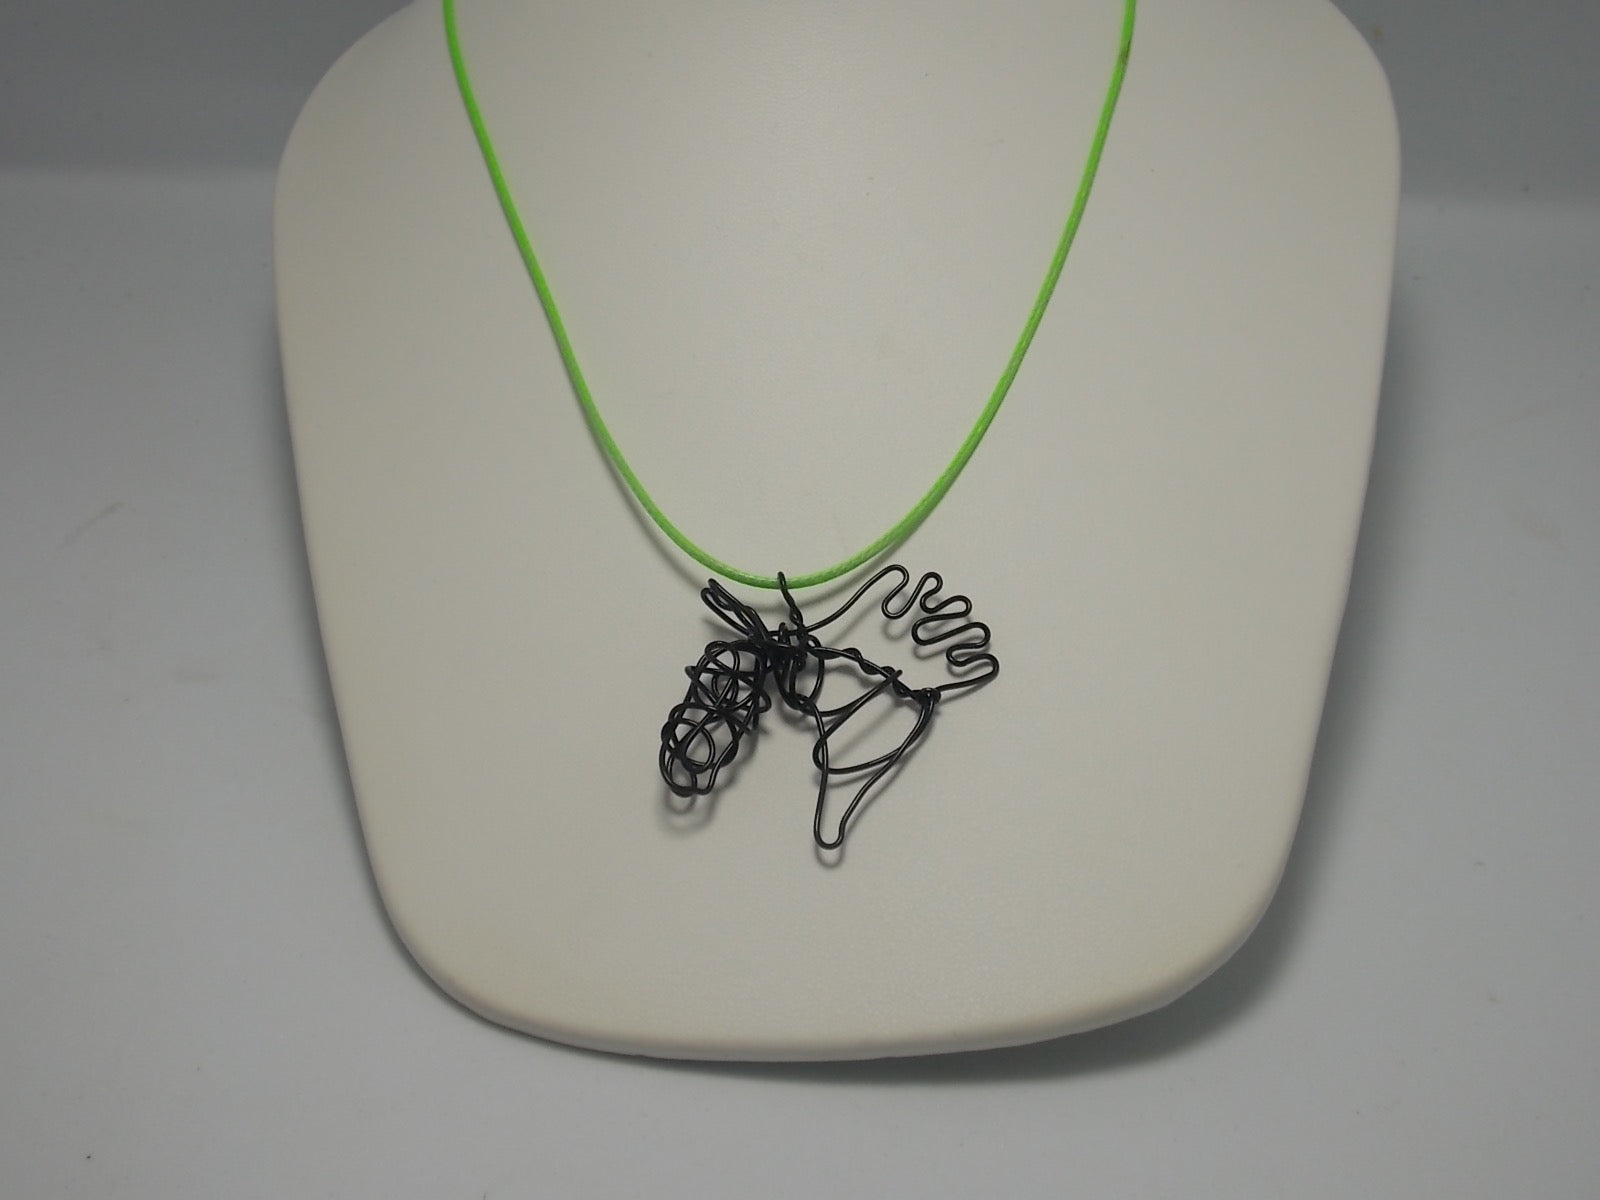 Horse head pendants on cords by Dacelle Peckler